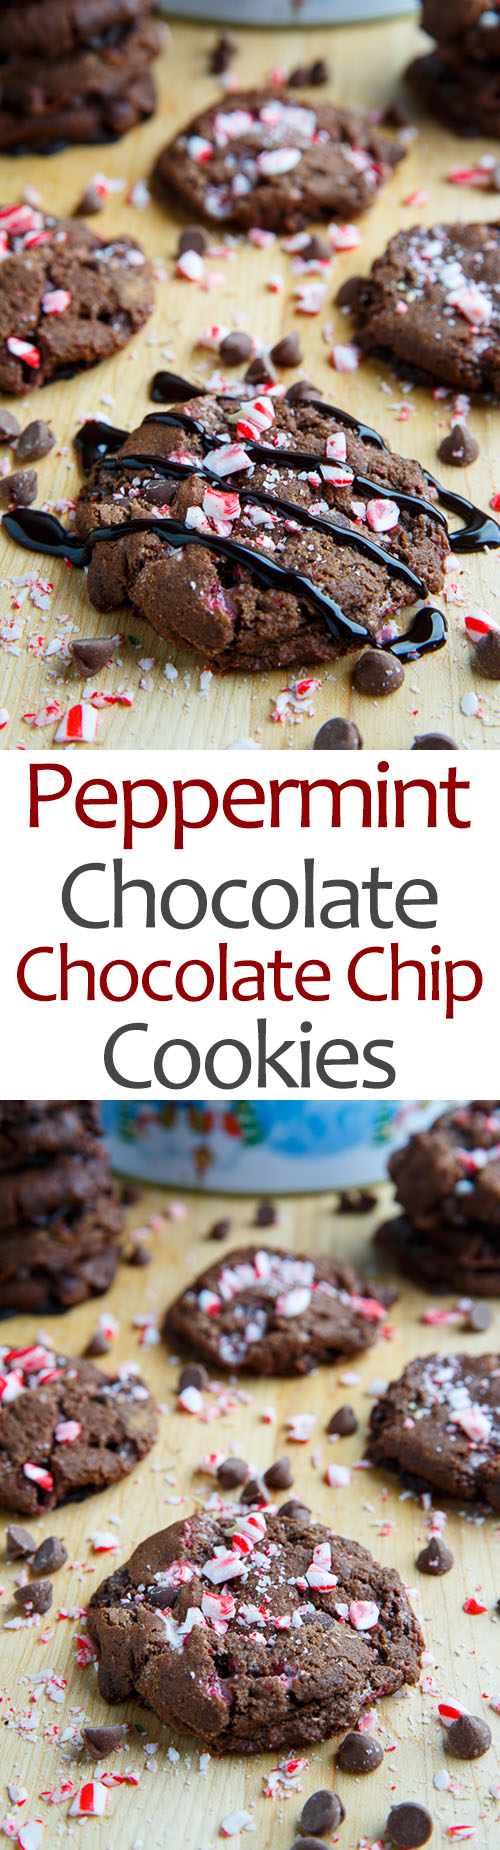 Peppermint Chocolate Chocolate Chip Cookies